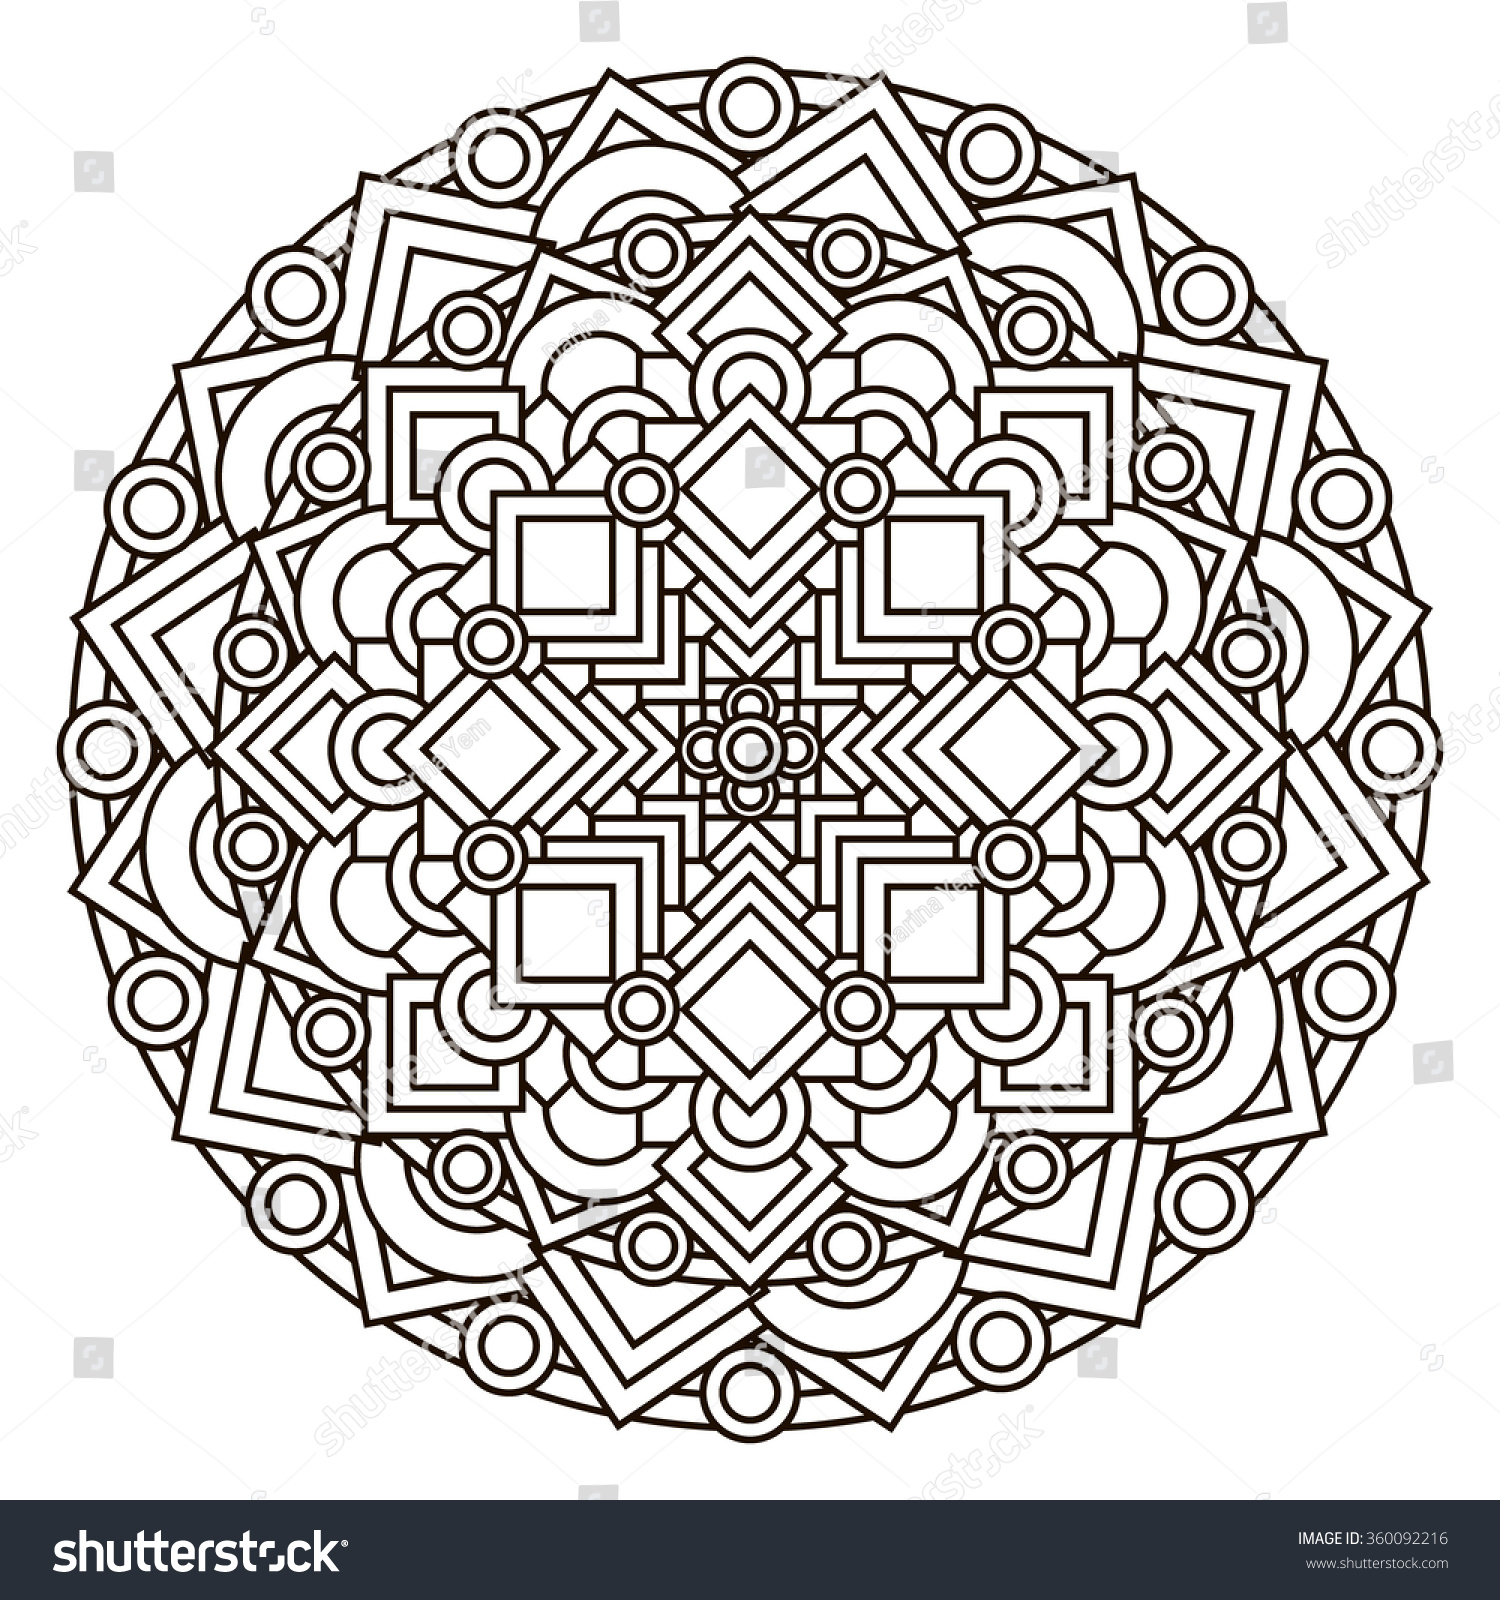 contour monochrome Mandala ethnic religious design element with a circular pattern Anti-paint for adults Vector illustration